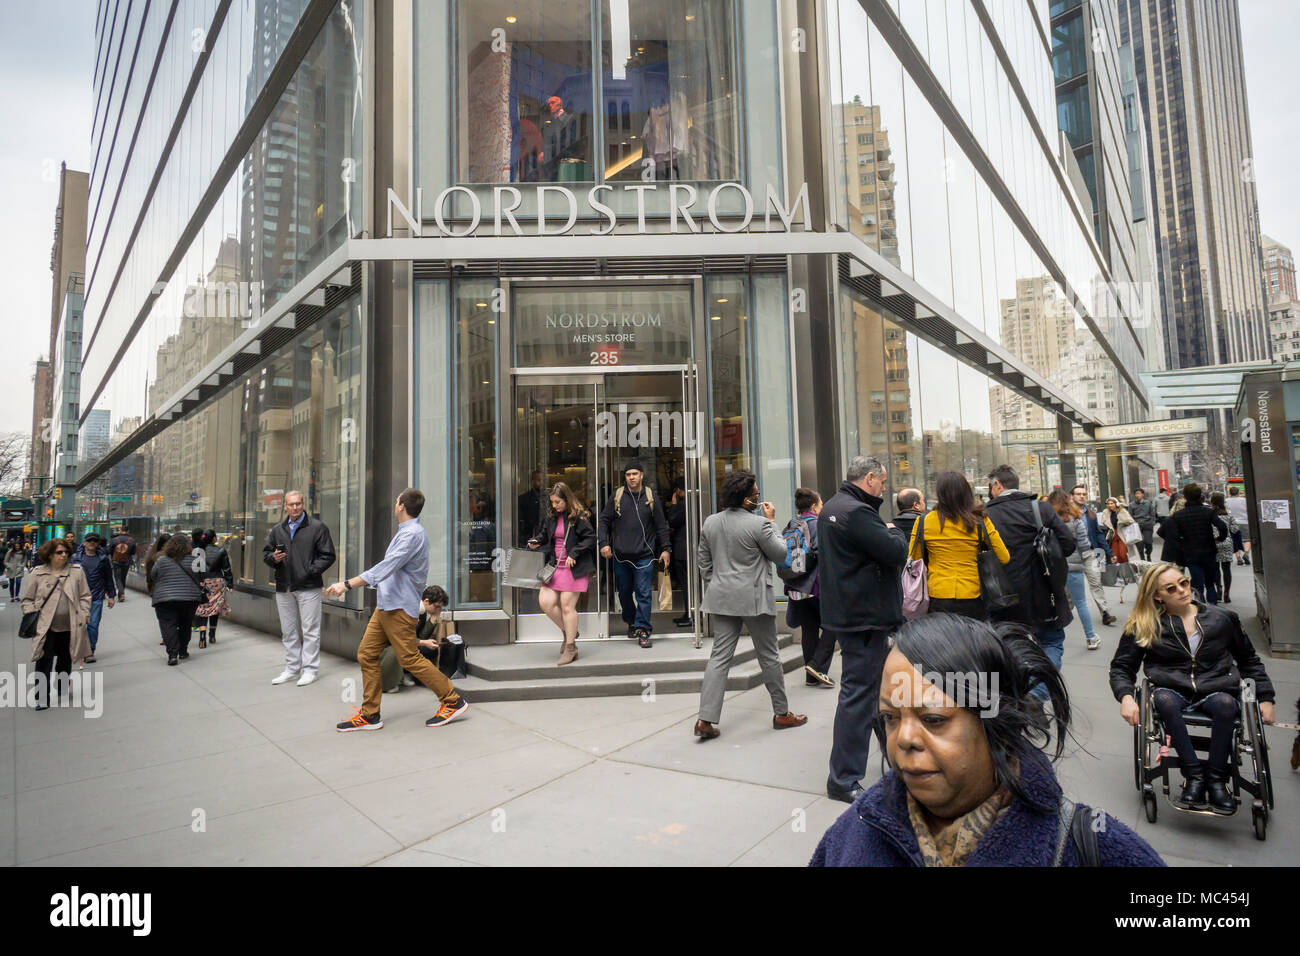 f7fc25a48 New York, USA. 12th Apr, 2018. Shoppers outside the new Nordstrom Men's  Store in Midtown Manhattan in New York on its grand opening day, Thursday,  April 12, ...